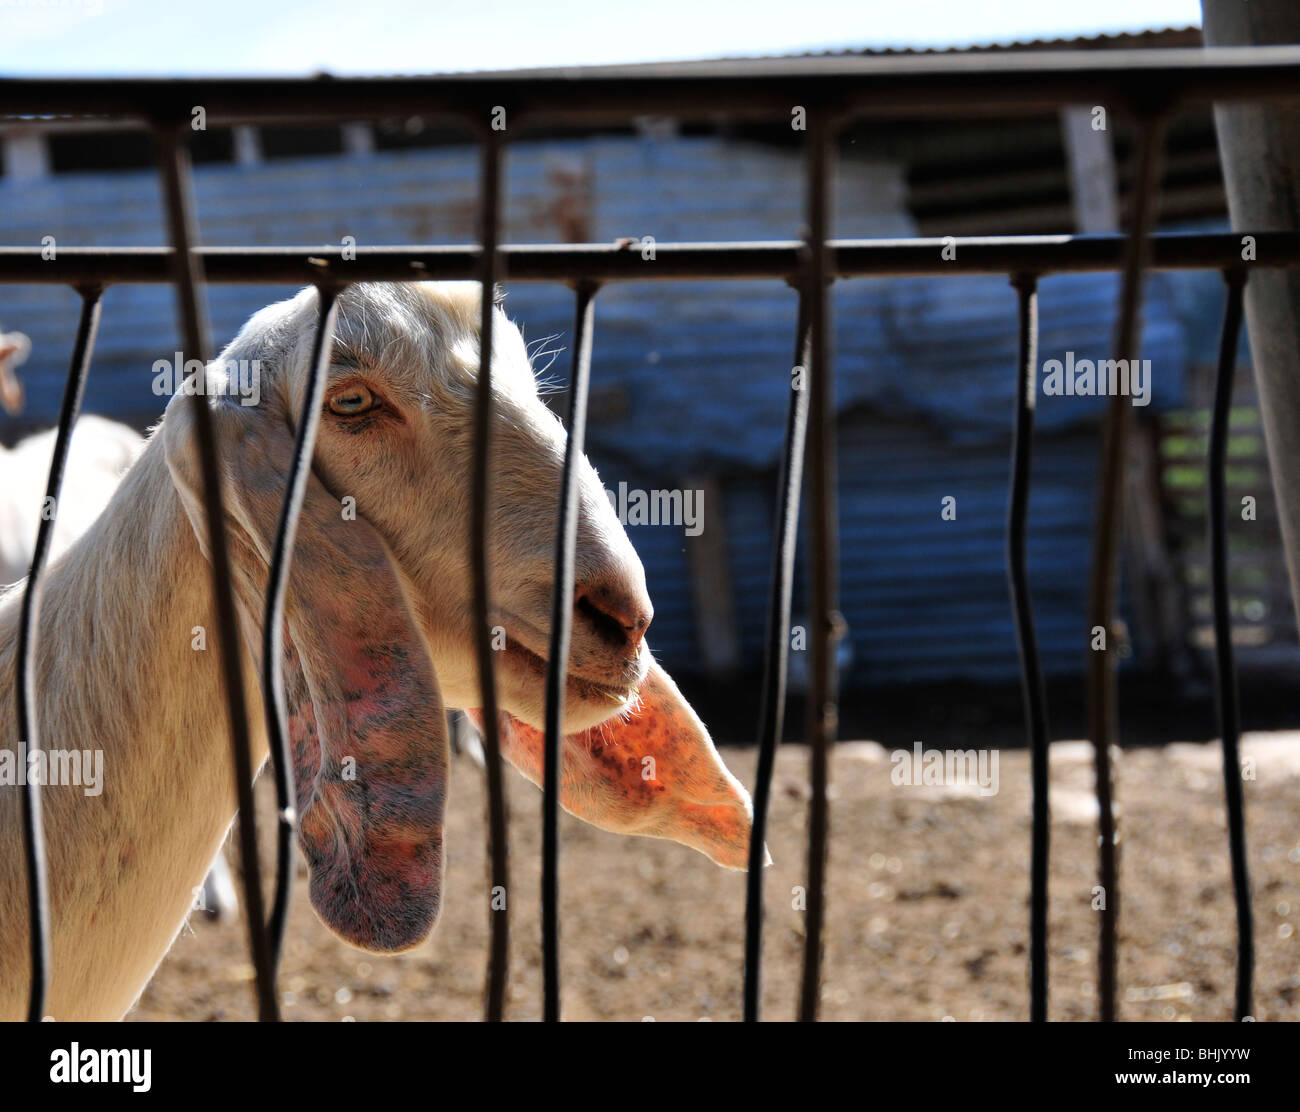 The sun shines through the ears of a long-eared goat on a cheese producer's farm on Cyprus - Stock Image